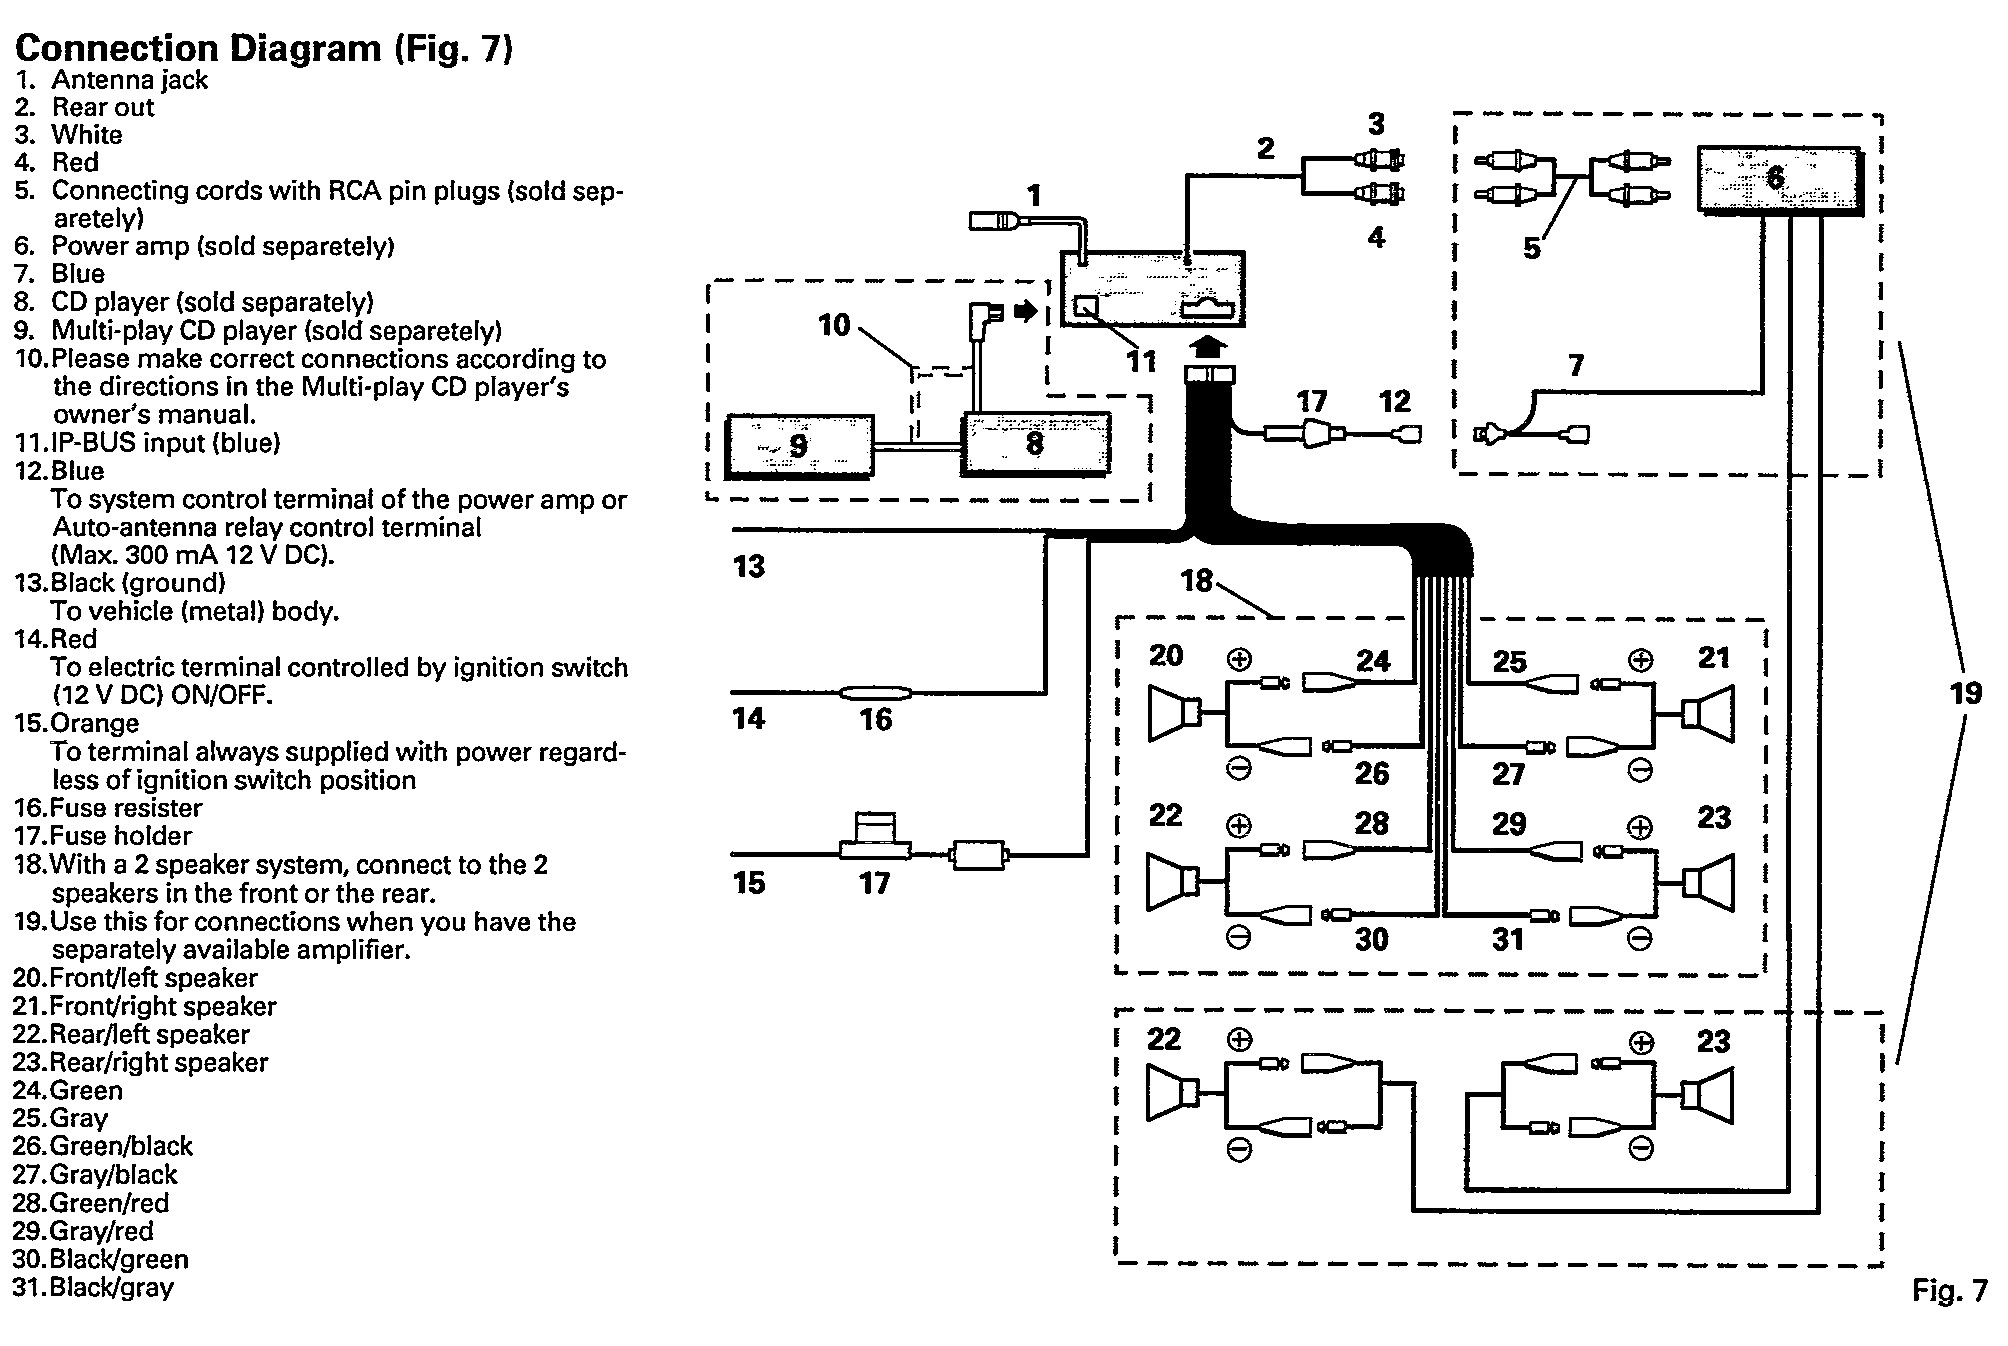 Frpp Coyote Engine Control Install furthermore Need Wiring Diagram Verification also Frpp Coyote Engine Control Install further  on frpp coyote engine control install